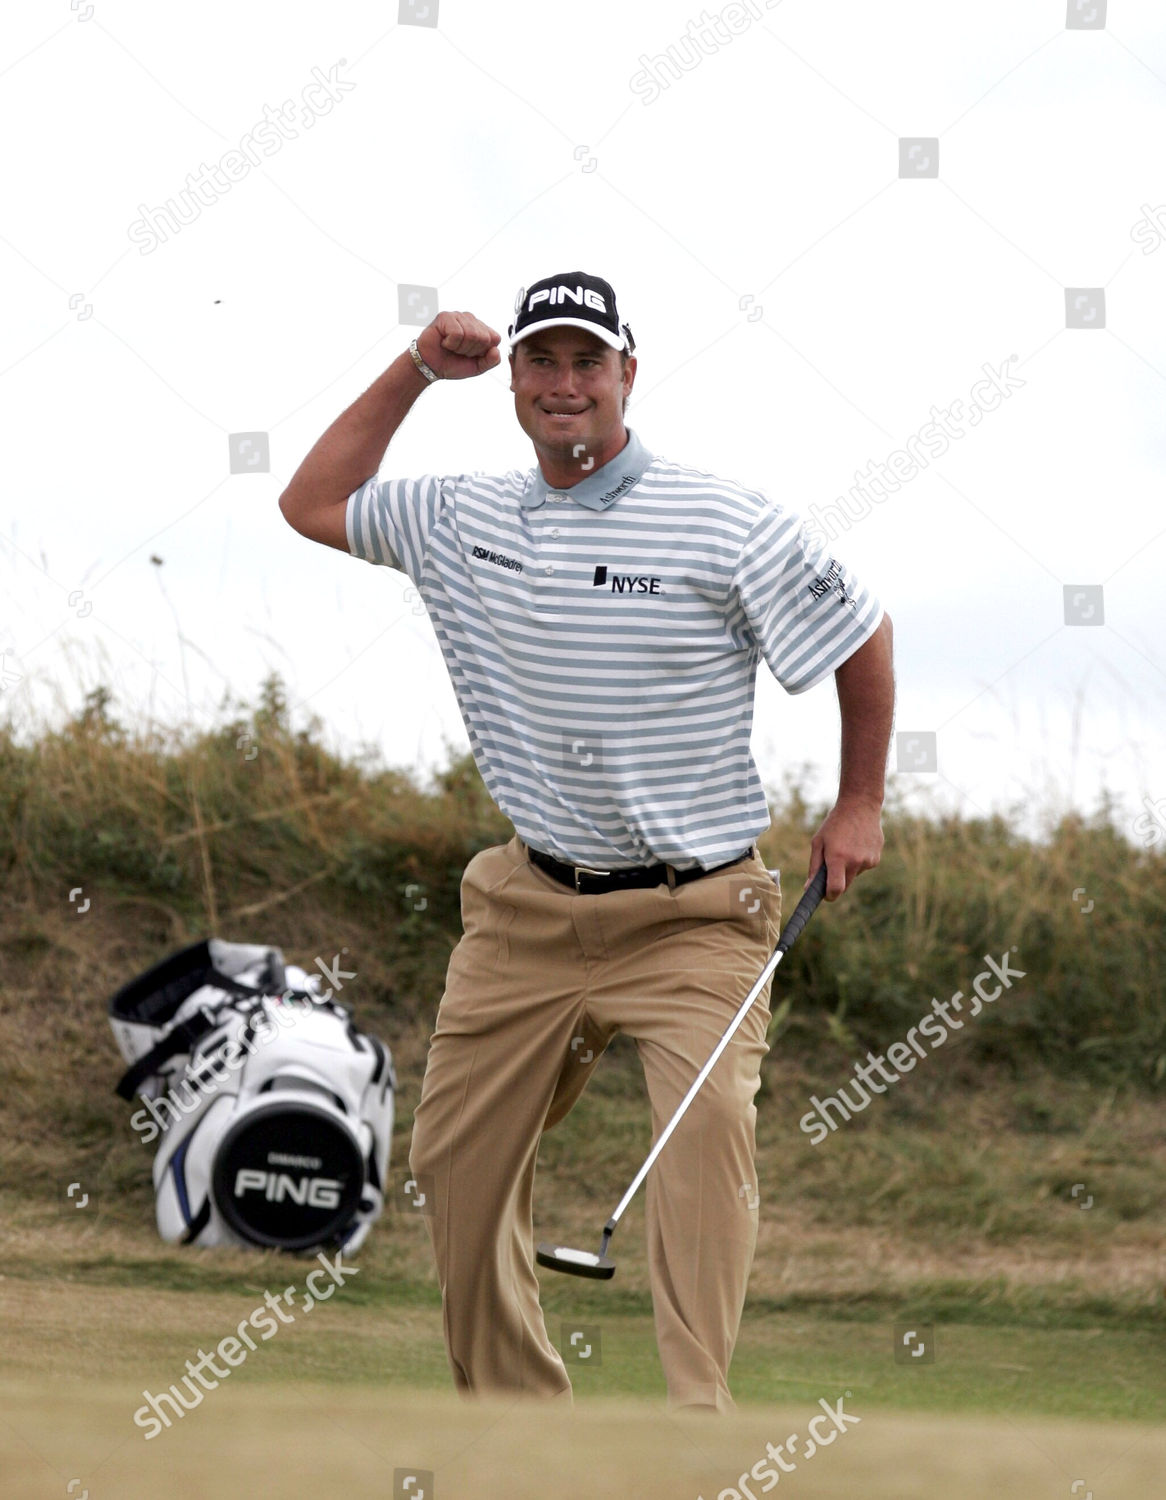 The Open Golf Championship At Royal Liverpool Club Hoylake Wirral Britain Stock Image By Charles Knight For Editorial Use Jul 23 2006